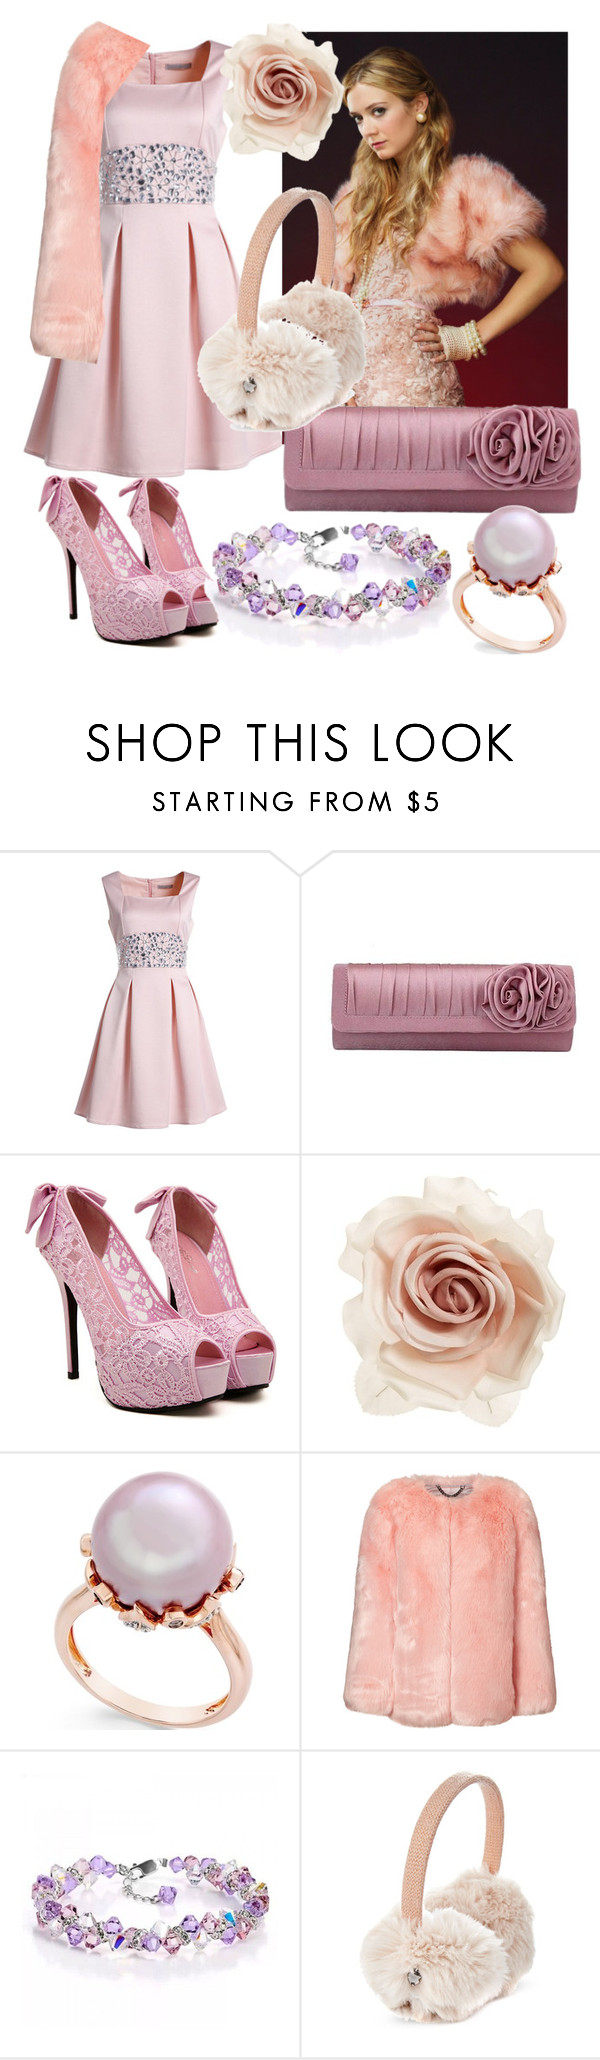 """""""Chanel No3"""" by egordon2 ❤ liked on Polyvore featuring Cara"""